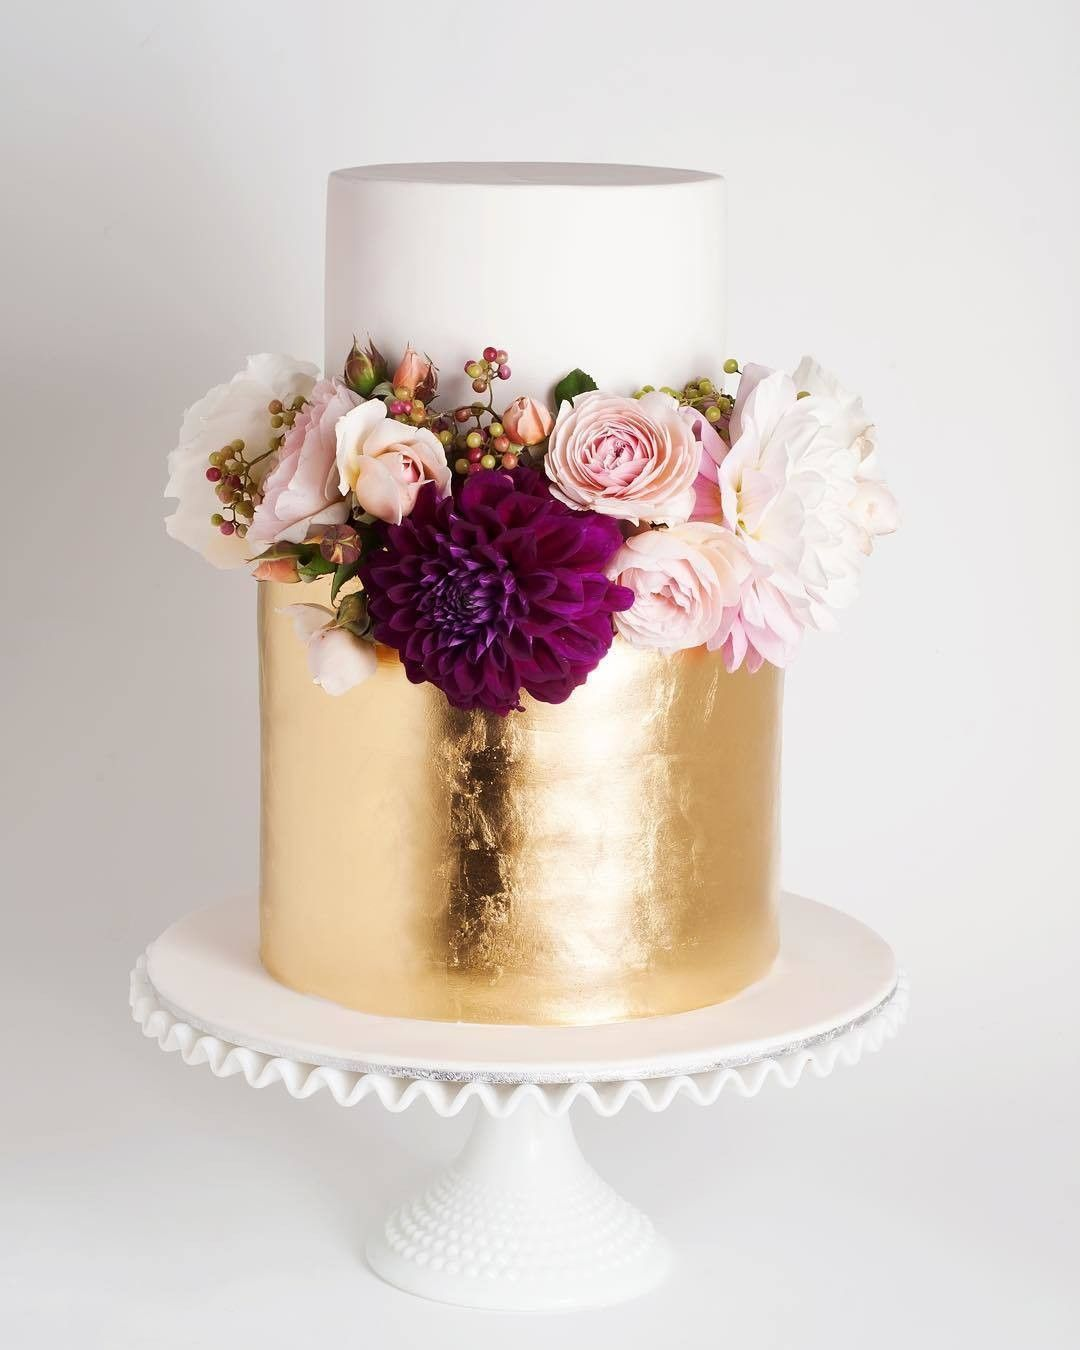 Beautiful White And Gold Cake Topped With Fresh Pink And